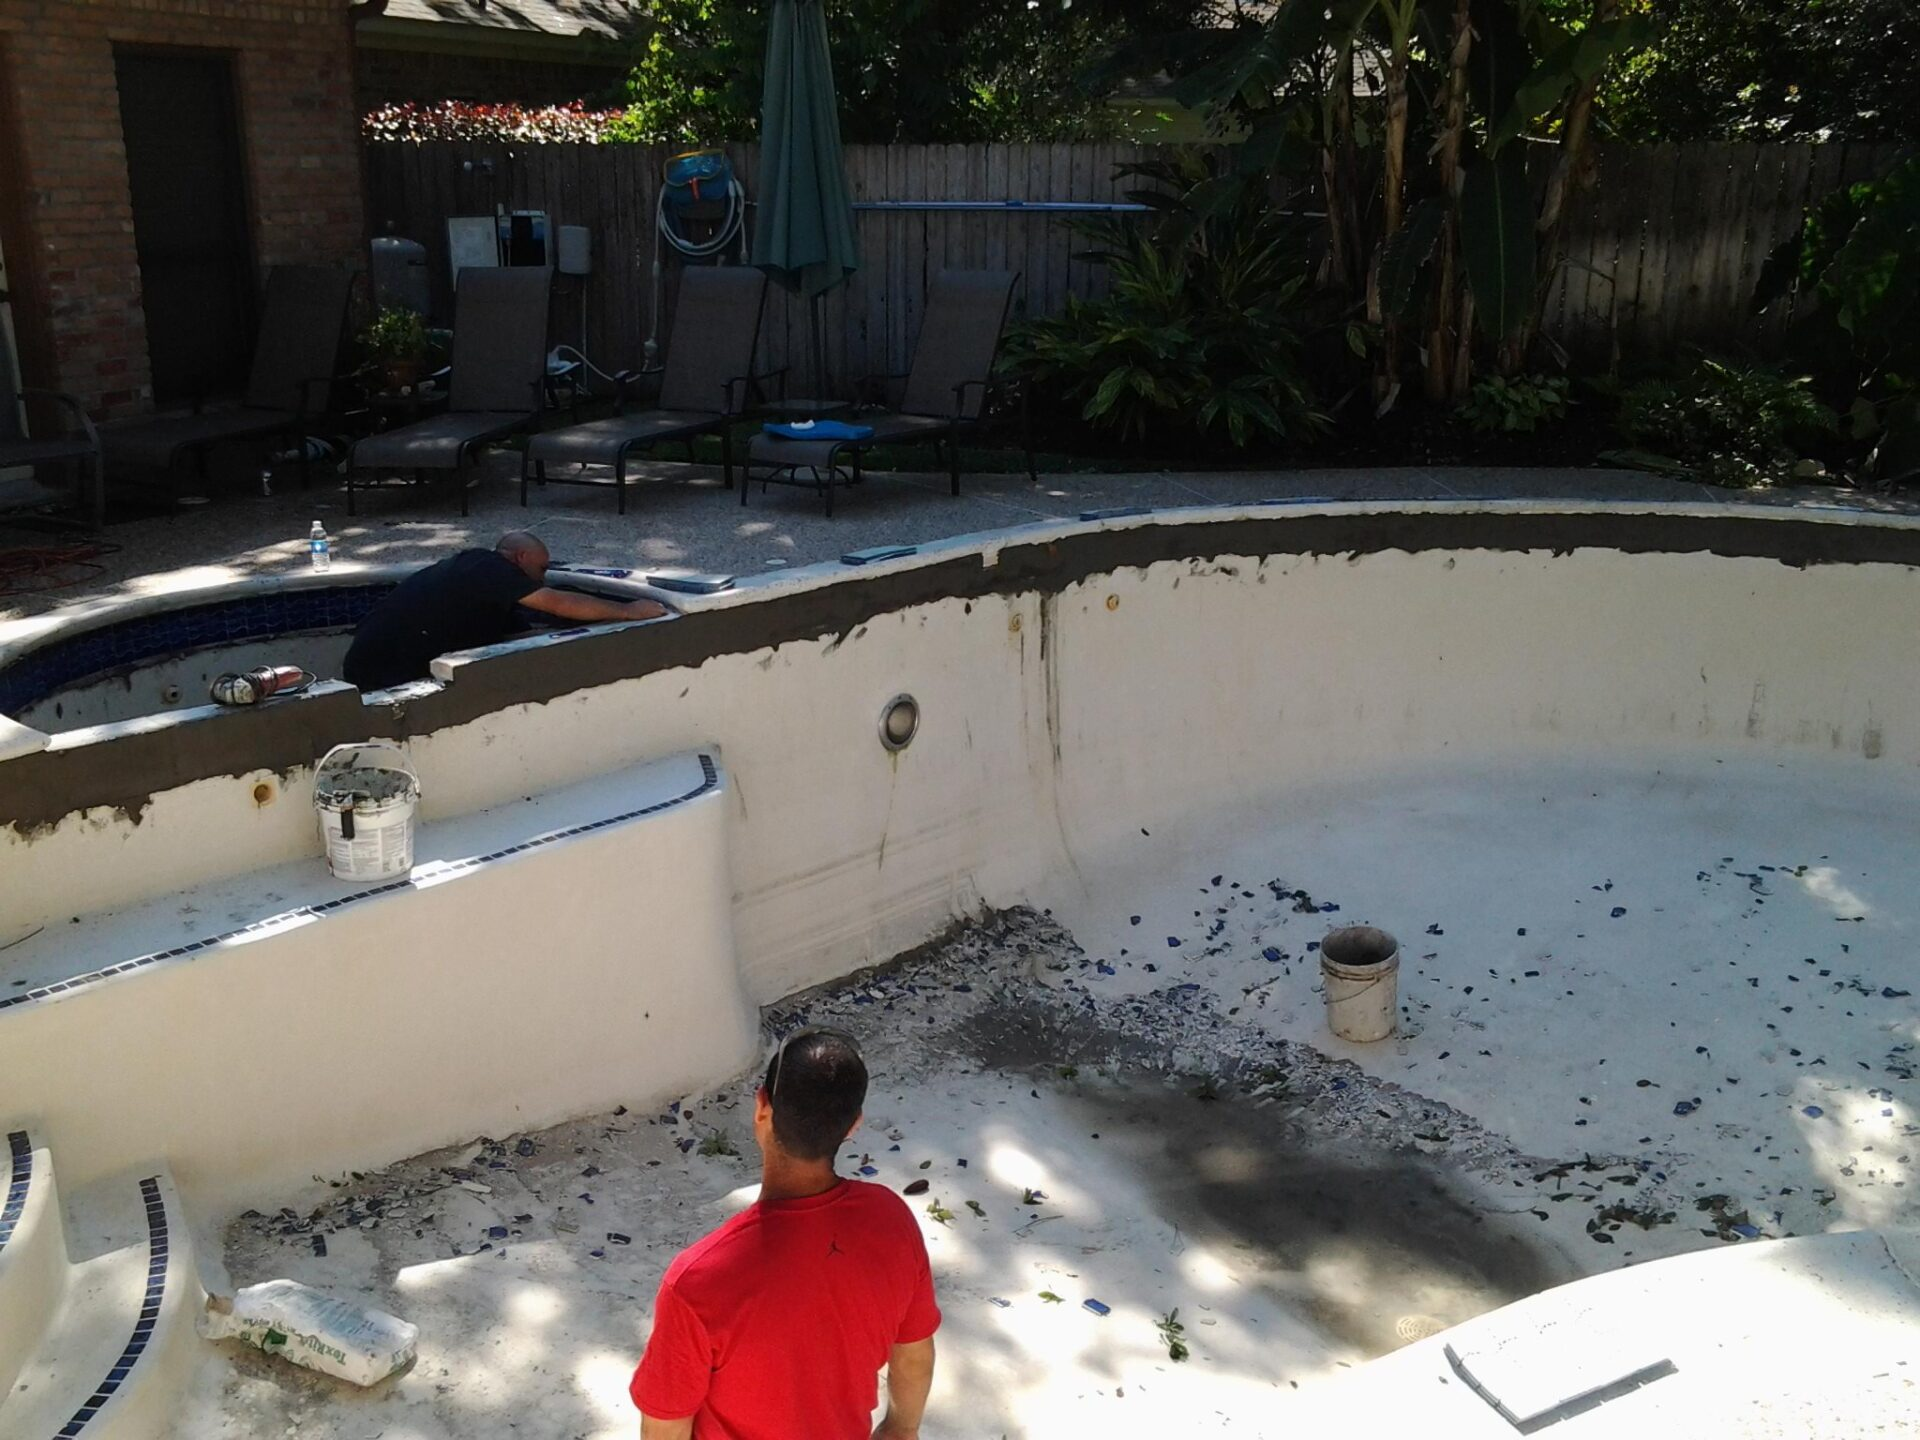 Pool Remodel - Copperfield - Before Image002